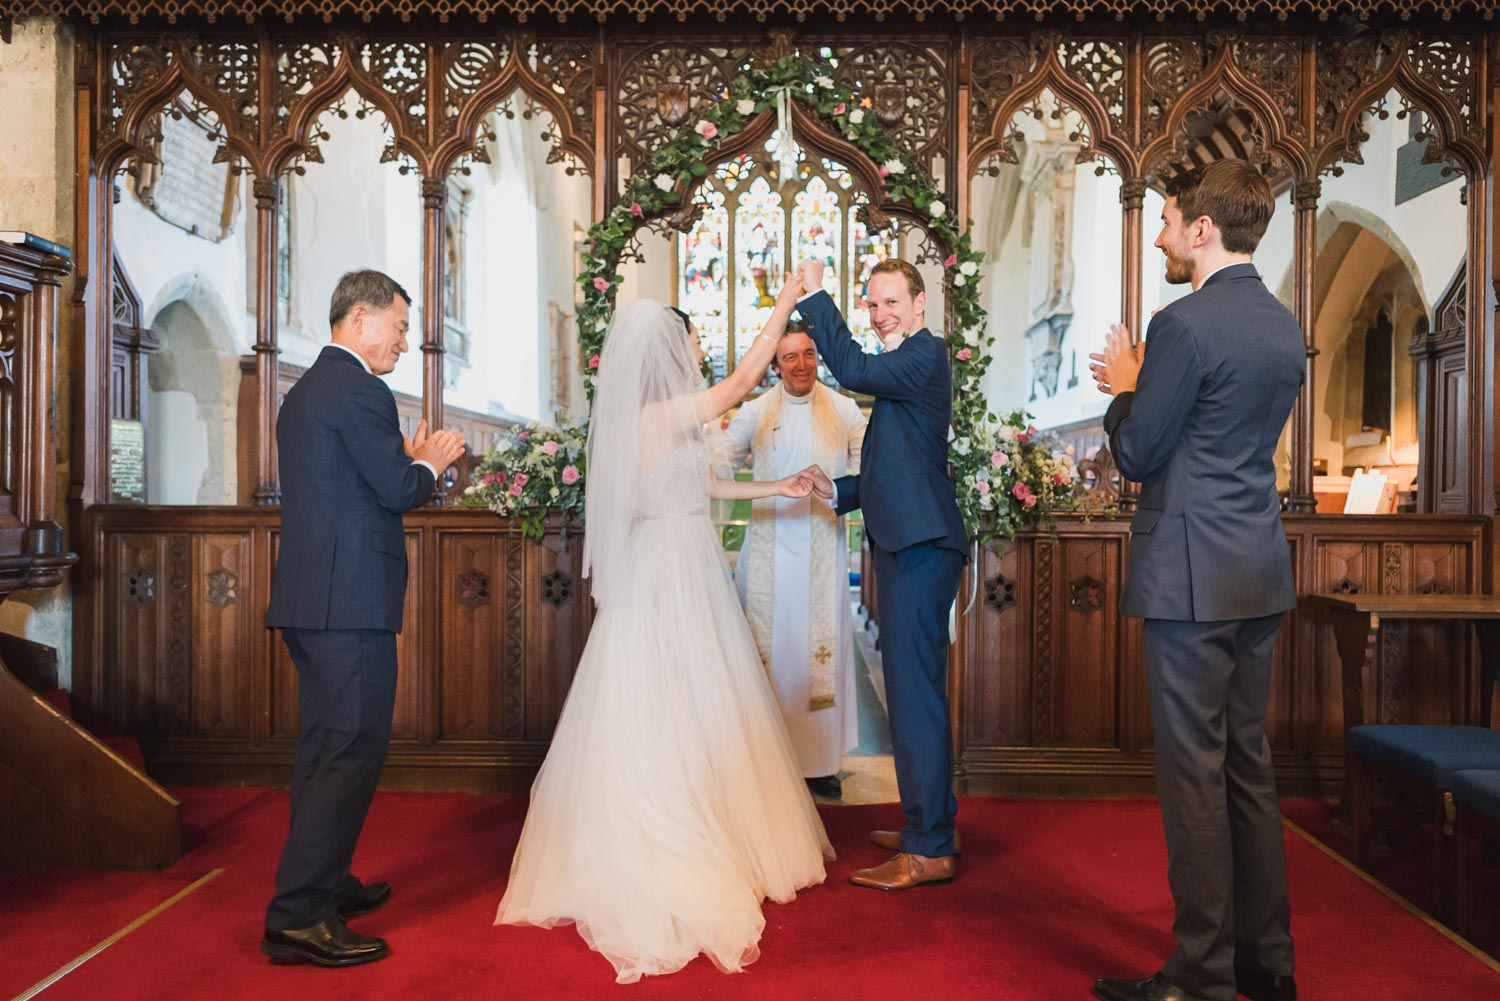 Saint Mary's Oxted Church wedding, Carine Bea Photography